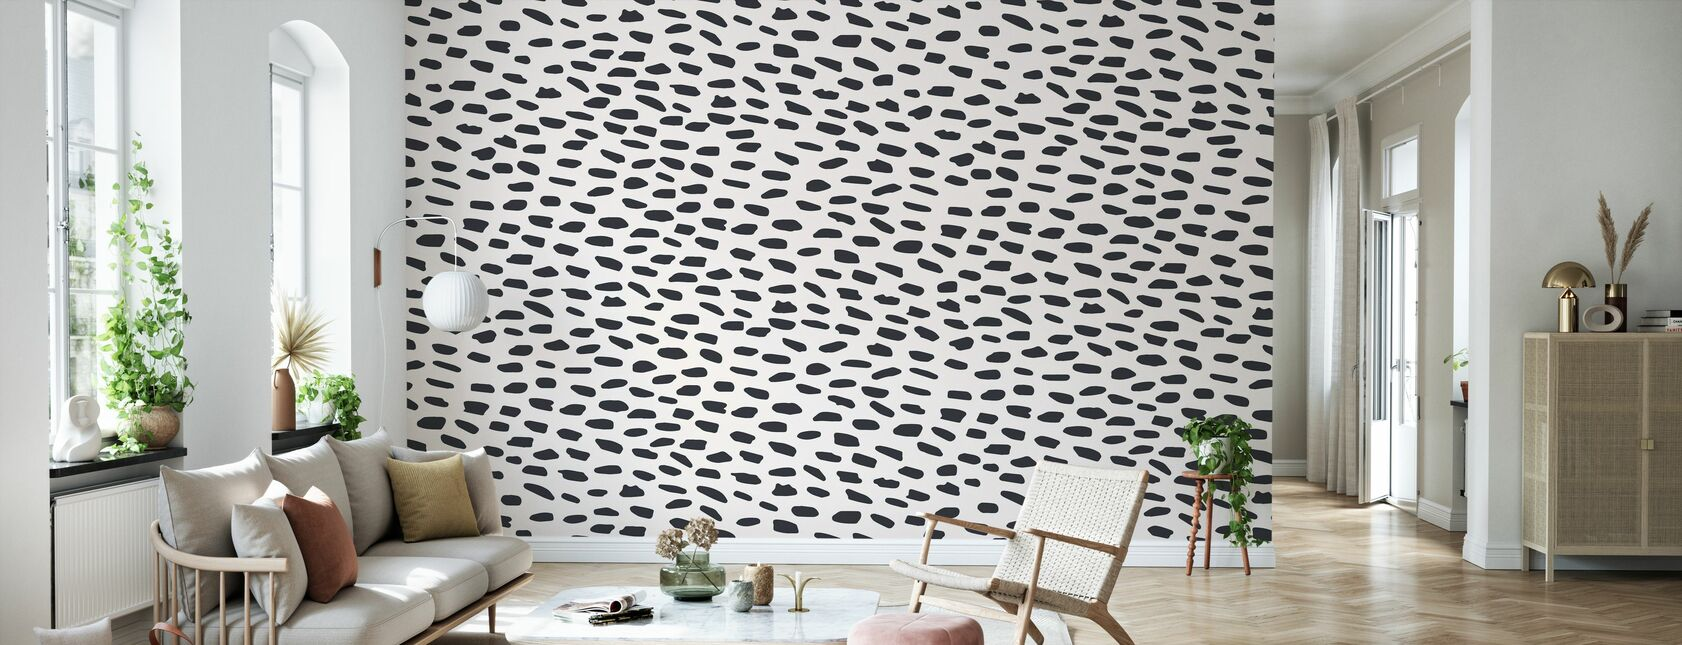 Salty Leopard - Wallpaper - Living Room